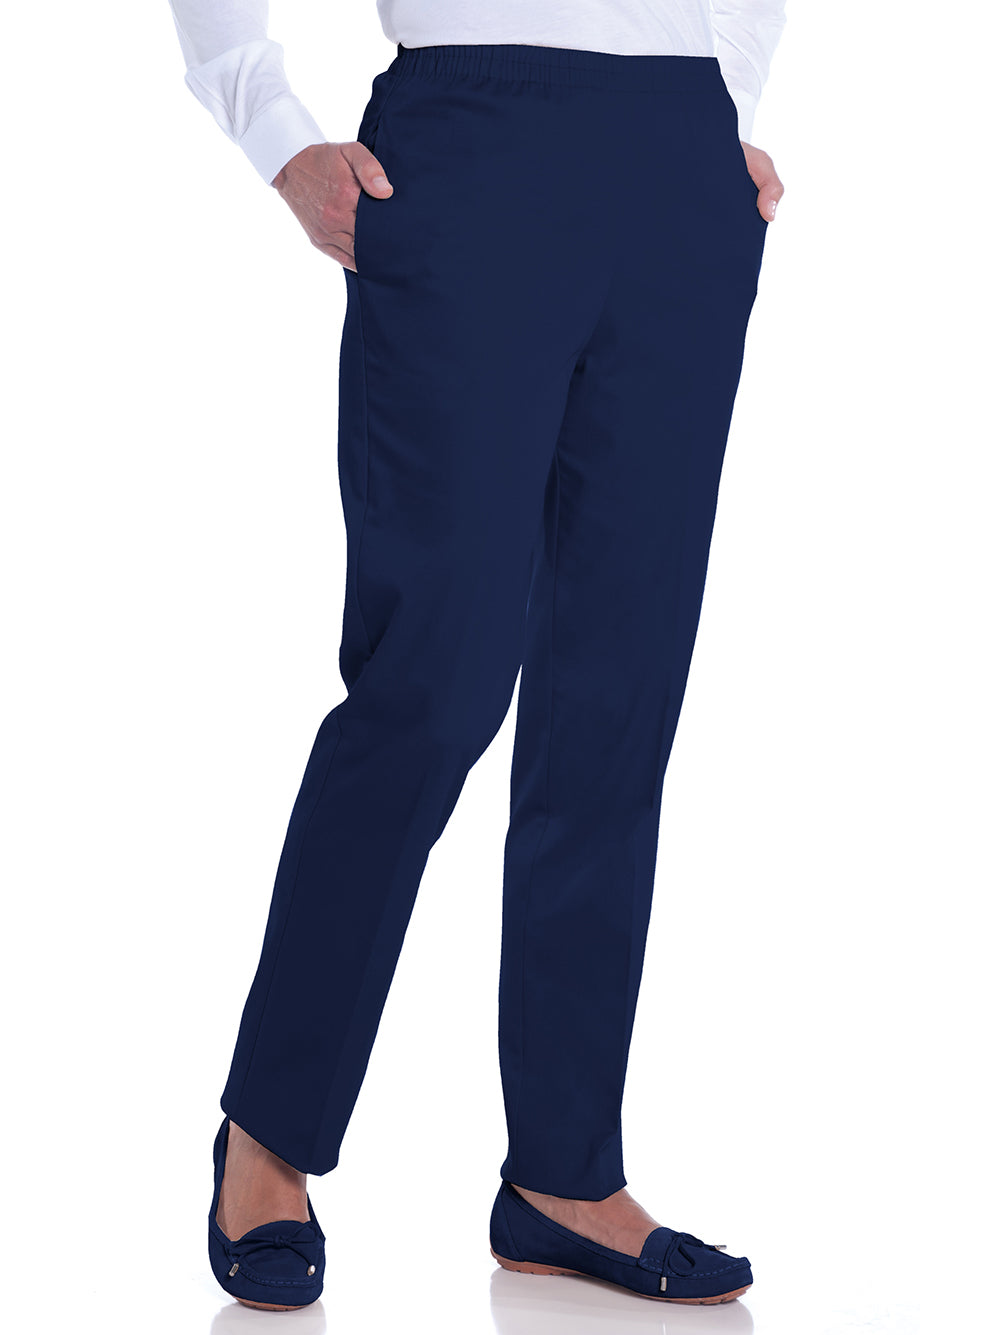 Stretch Twill Ladies Pull-On Pant | Ink E76 - Leonlevin